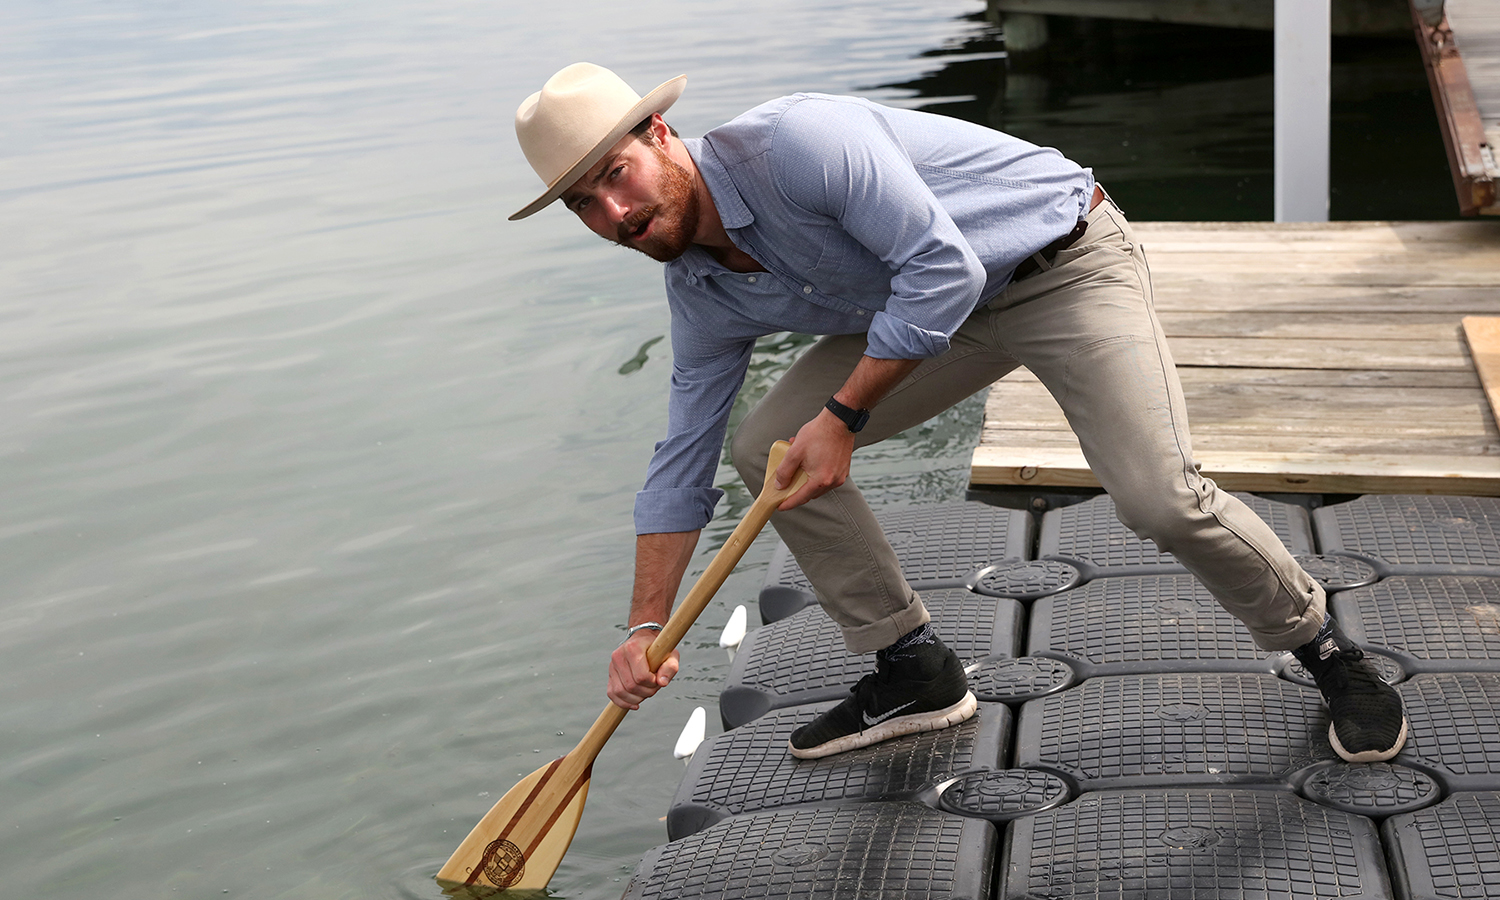 Riggs Alosa '17 dips his oar in Seneca Lake, a celebrated tradition of Hobart's heritage expressing the promise of a reciprocal lifelong bond between graduates and their alma mater.